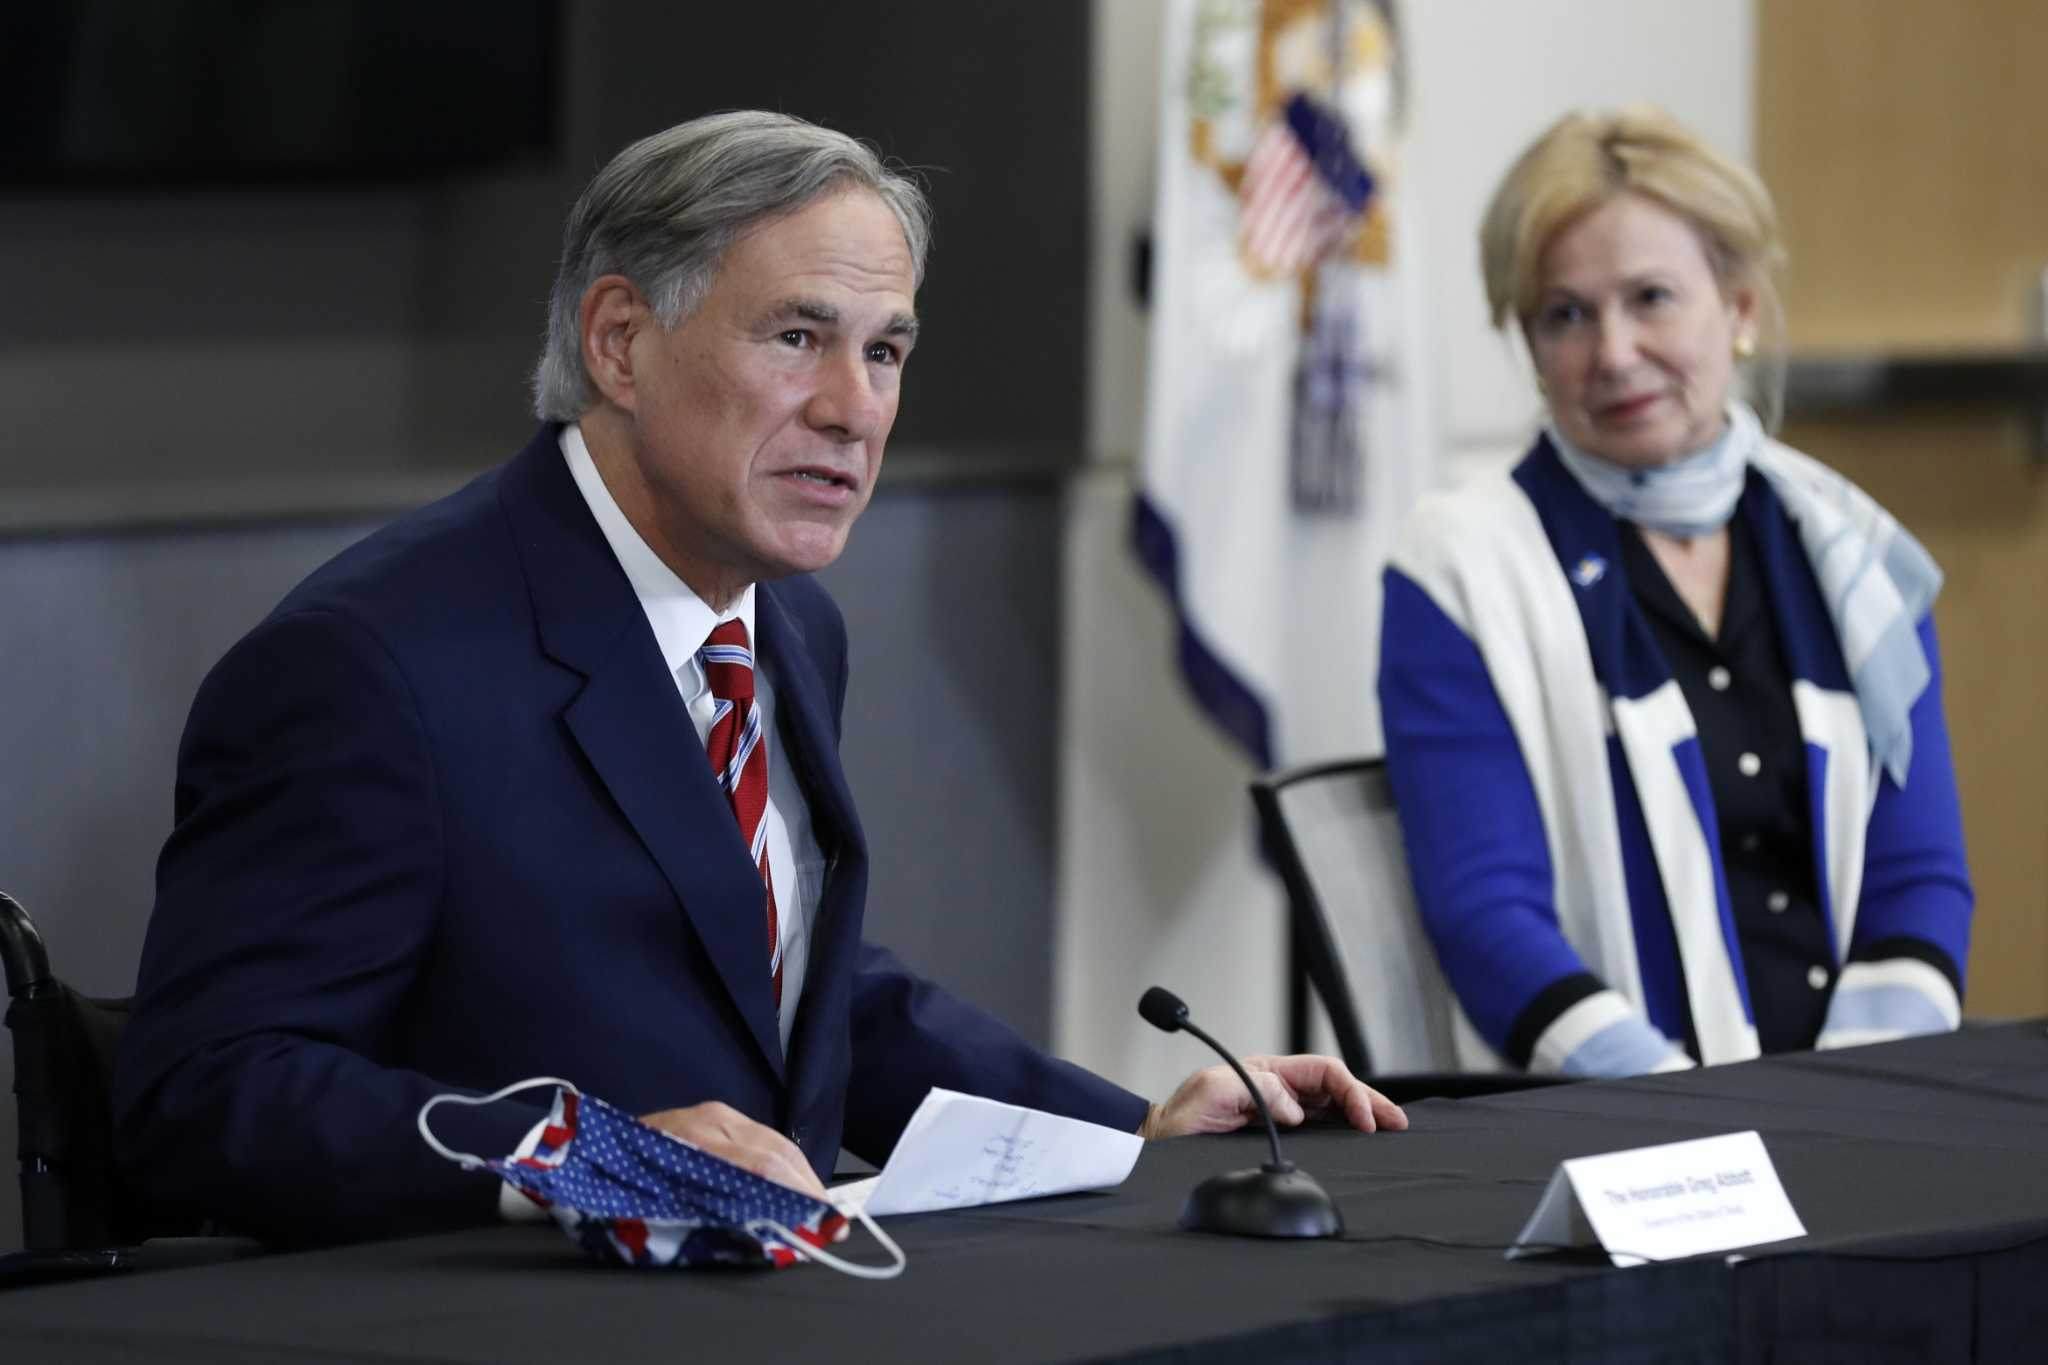 Republican committees in 8 Texas counties vote to censure Gov. Abbott over COVID response